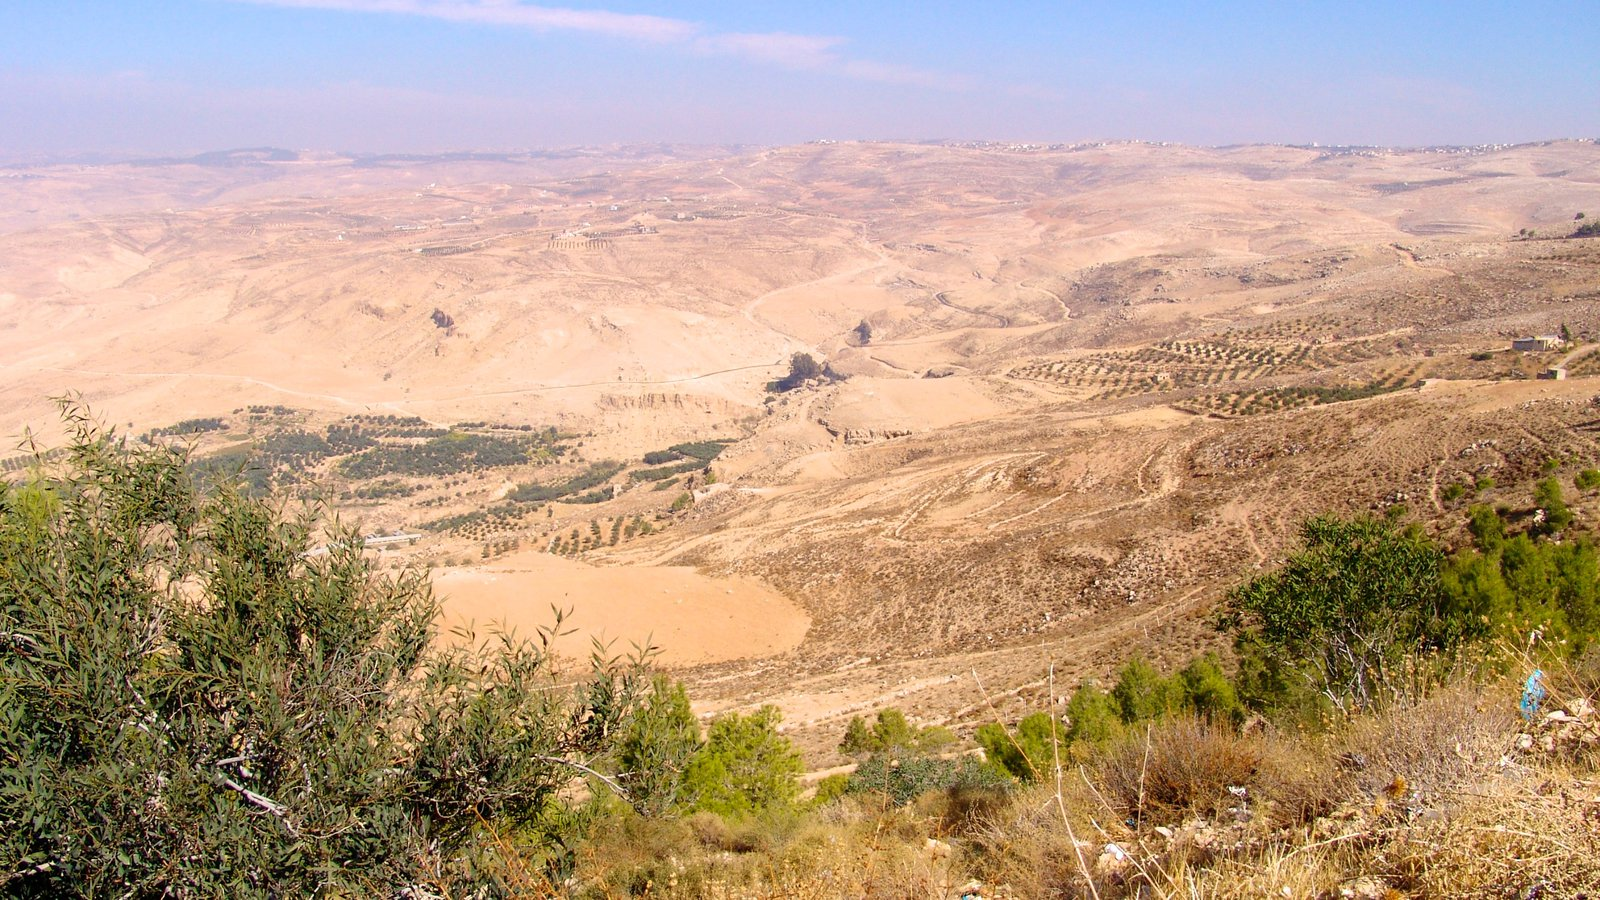 Mount Nebo which includes landscape views and desert views